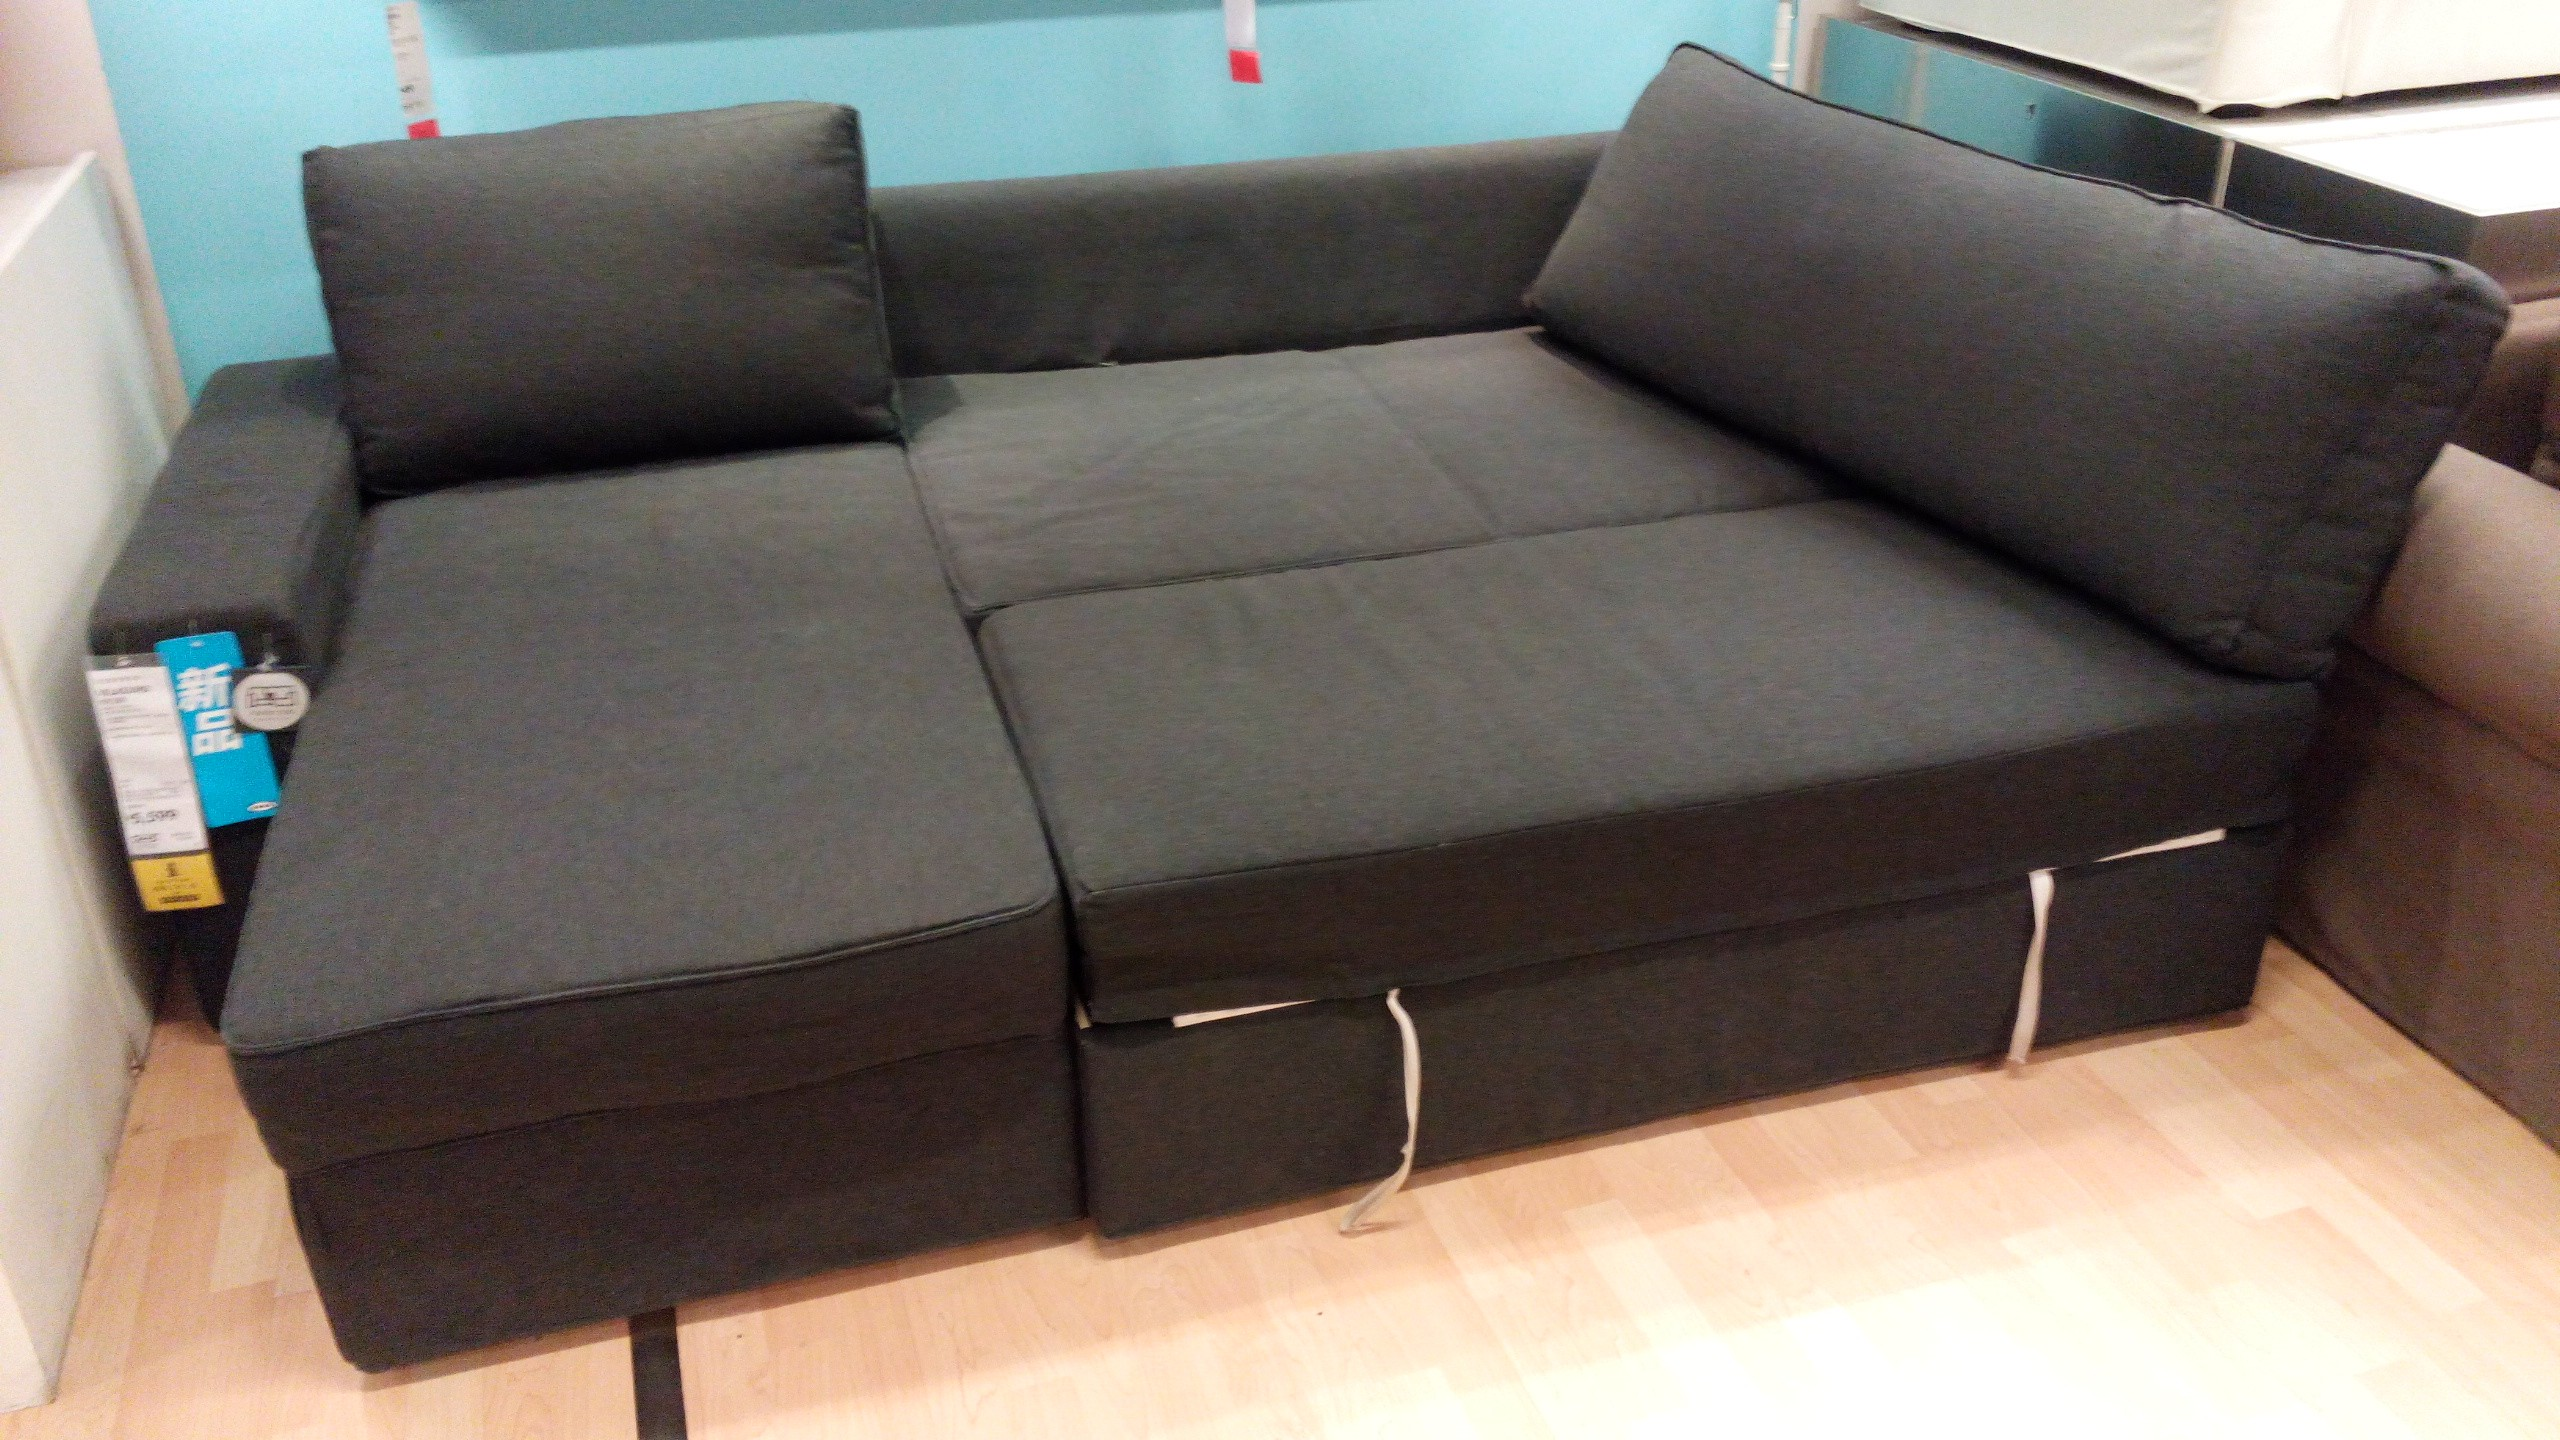 Ikea sofa Bed Reviews Fancy Ikea Vilasund and Backabro Review Return Of the sofa Bed Clones Gallery